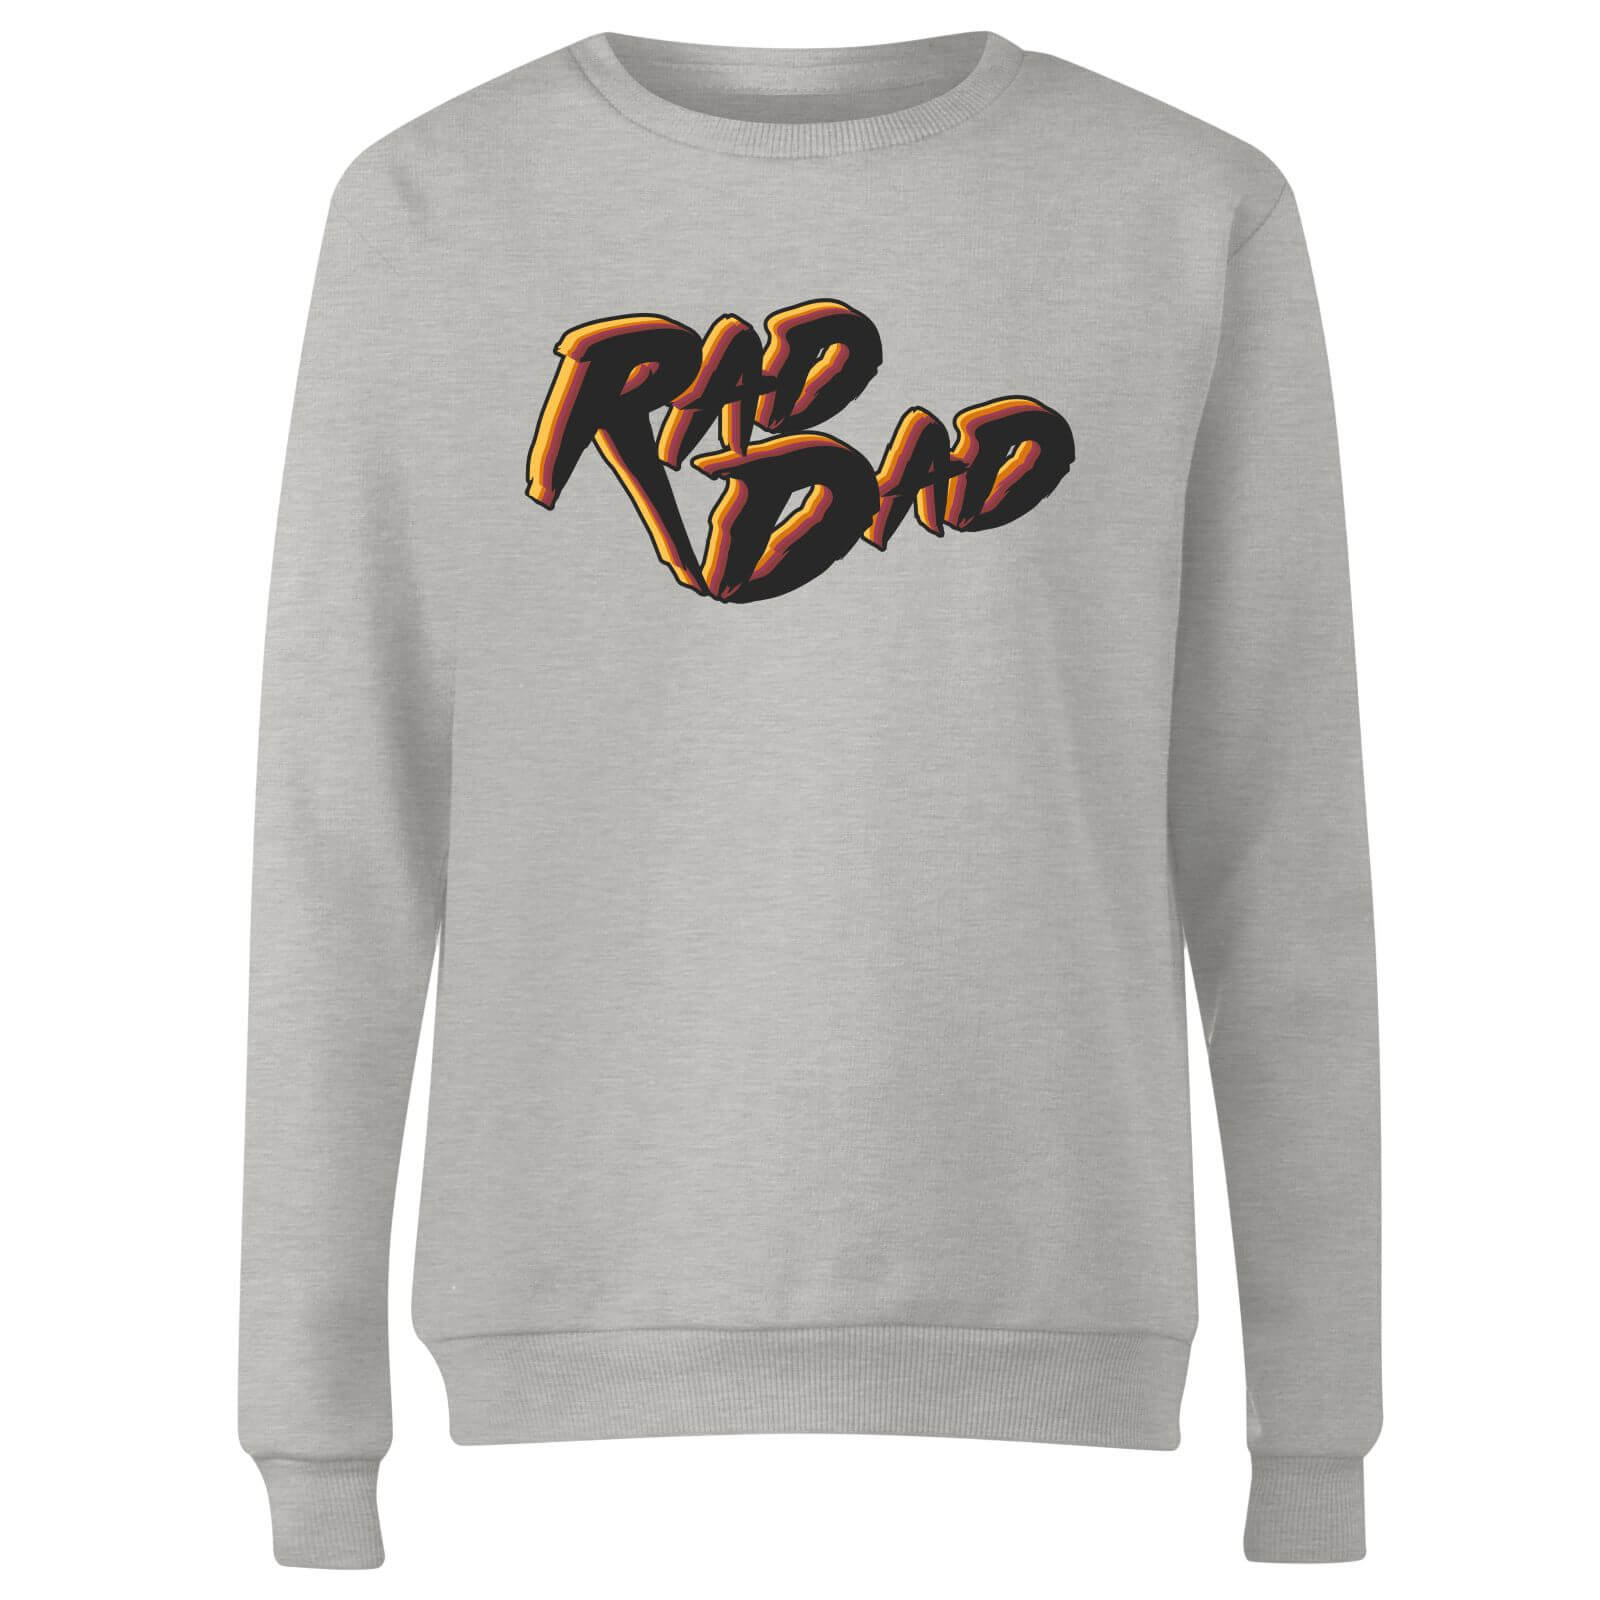 Rad Dad Women